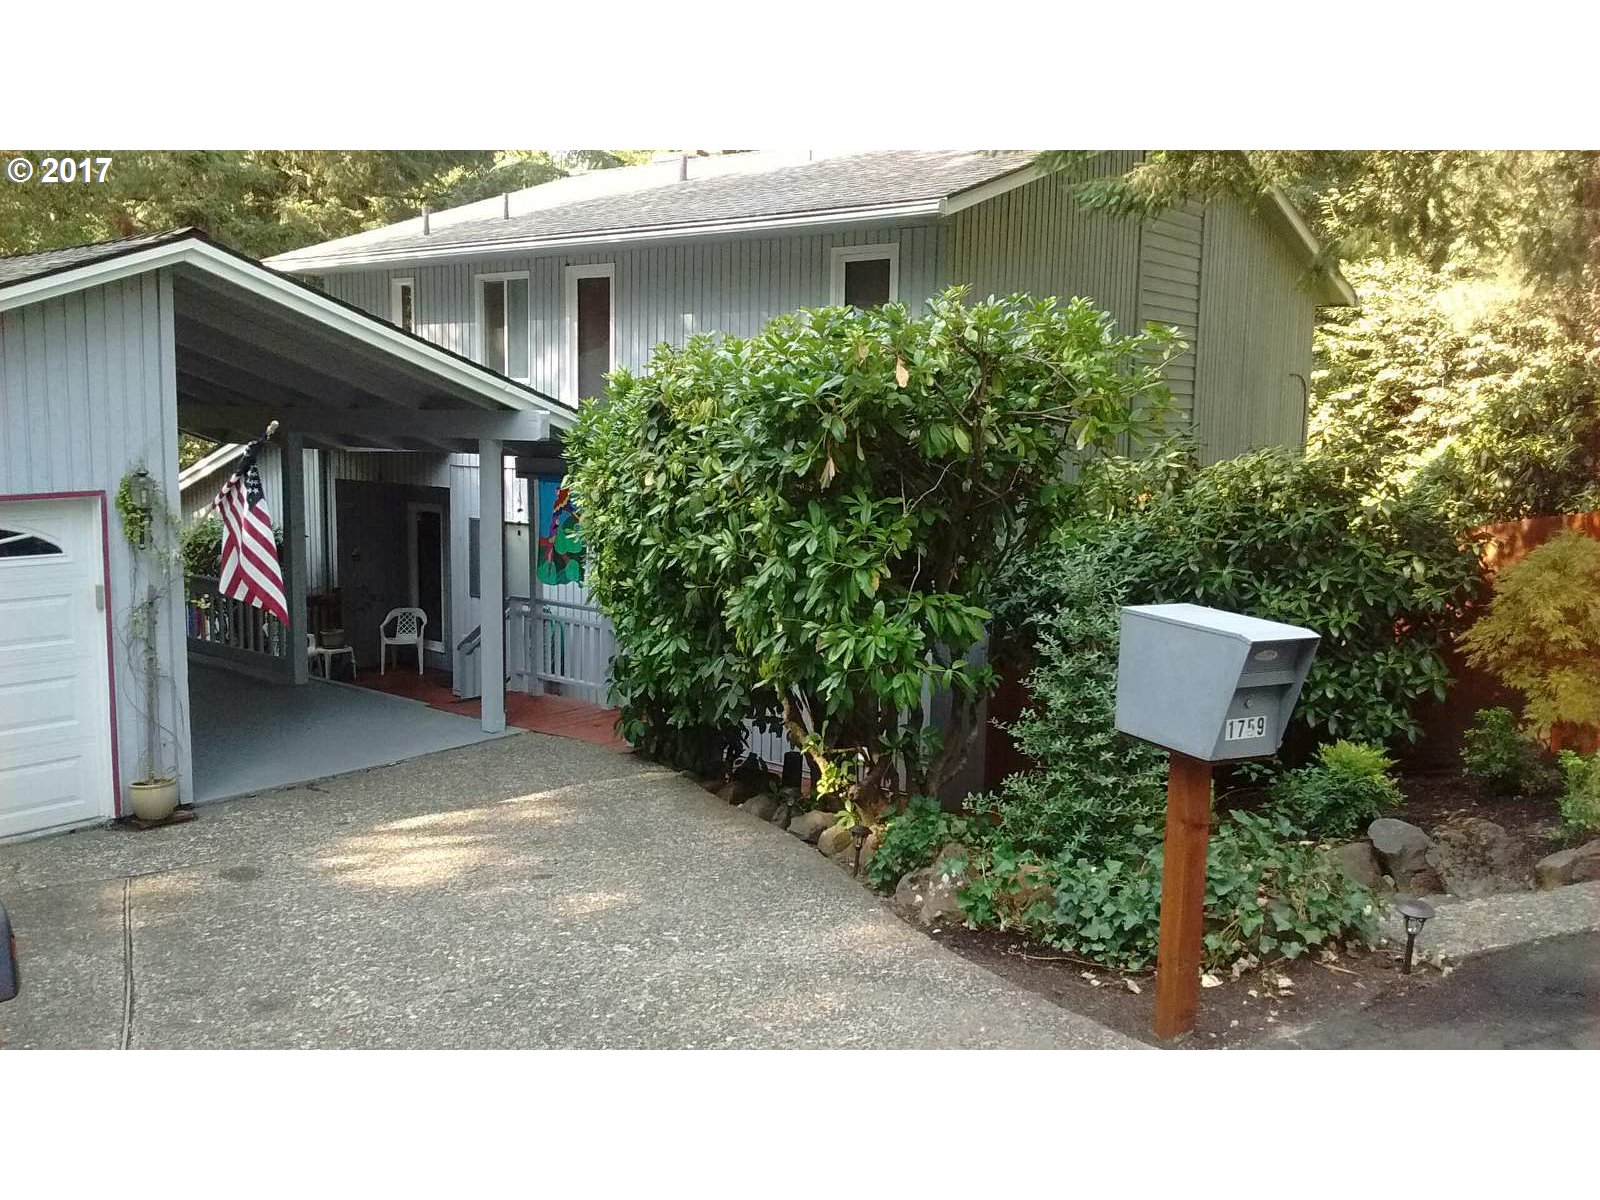 1759 MARYLHURST DR, West Linn, OR 97068